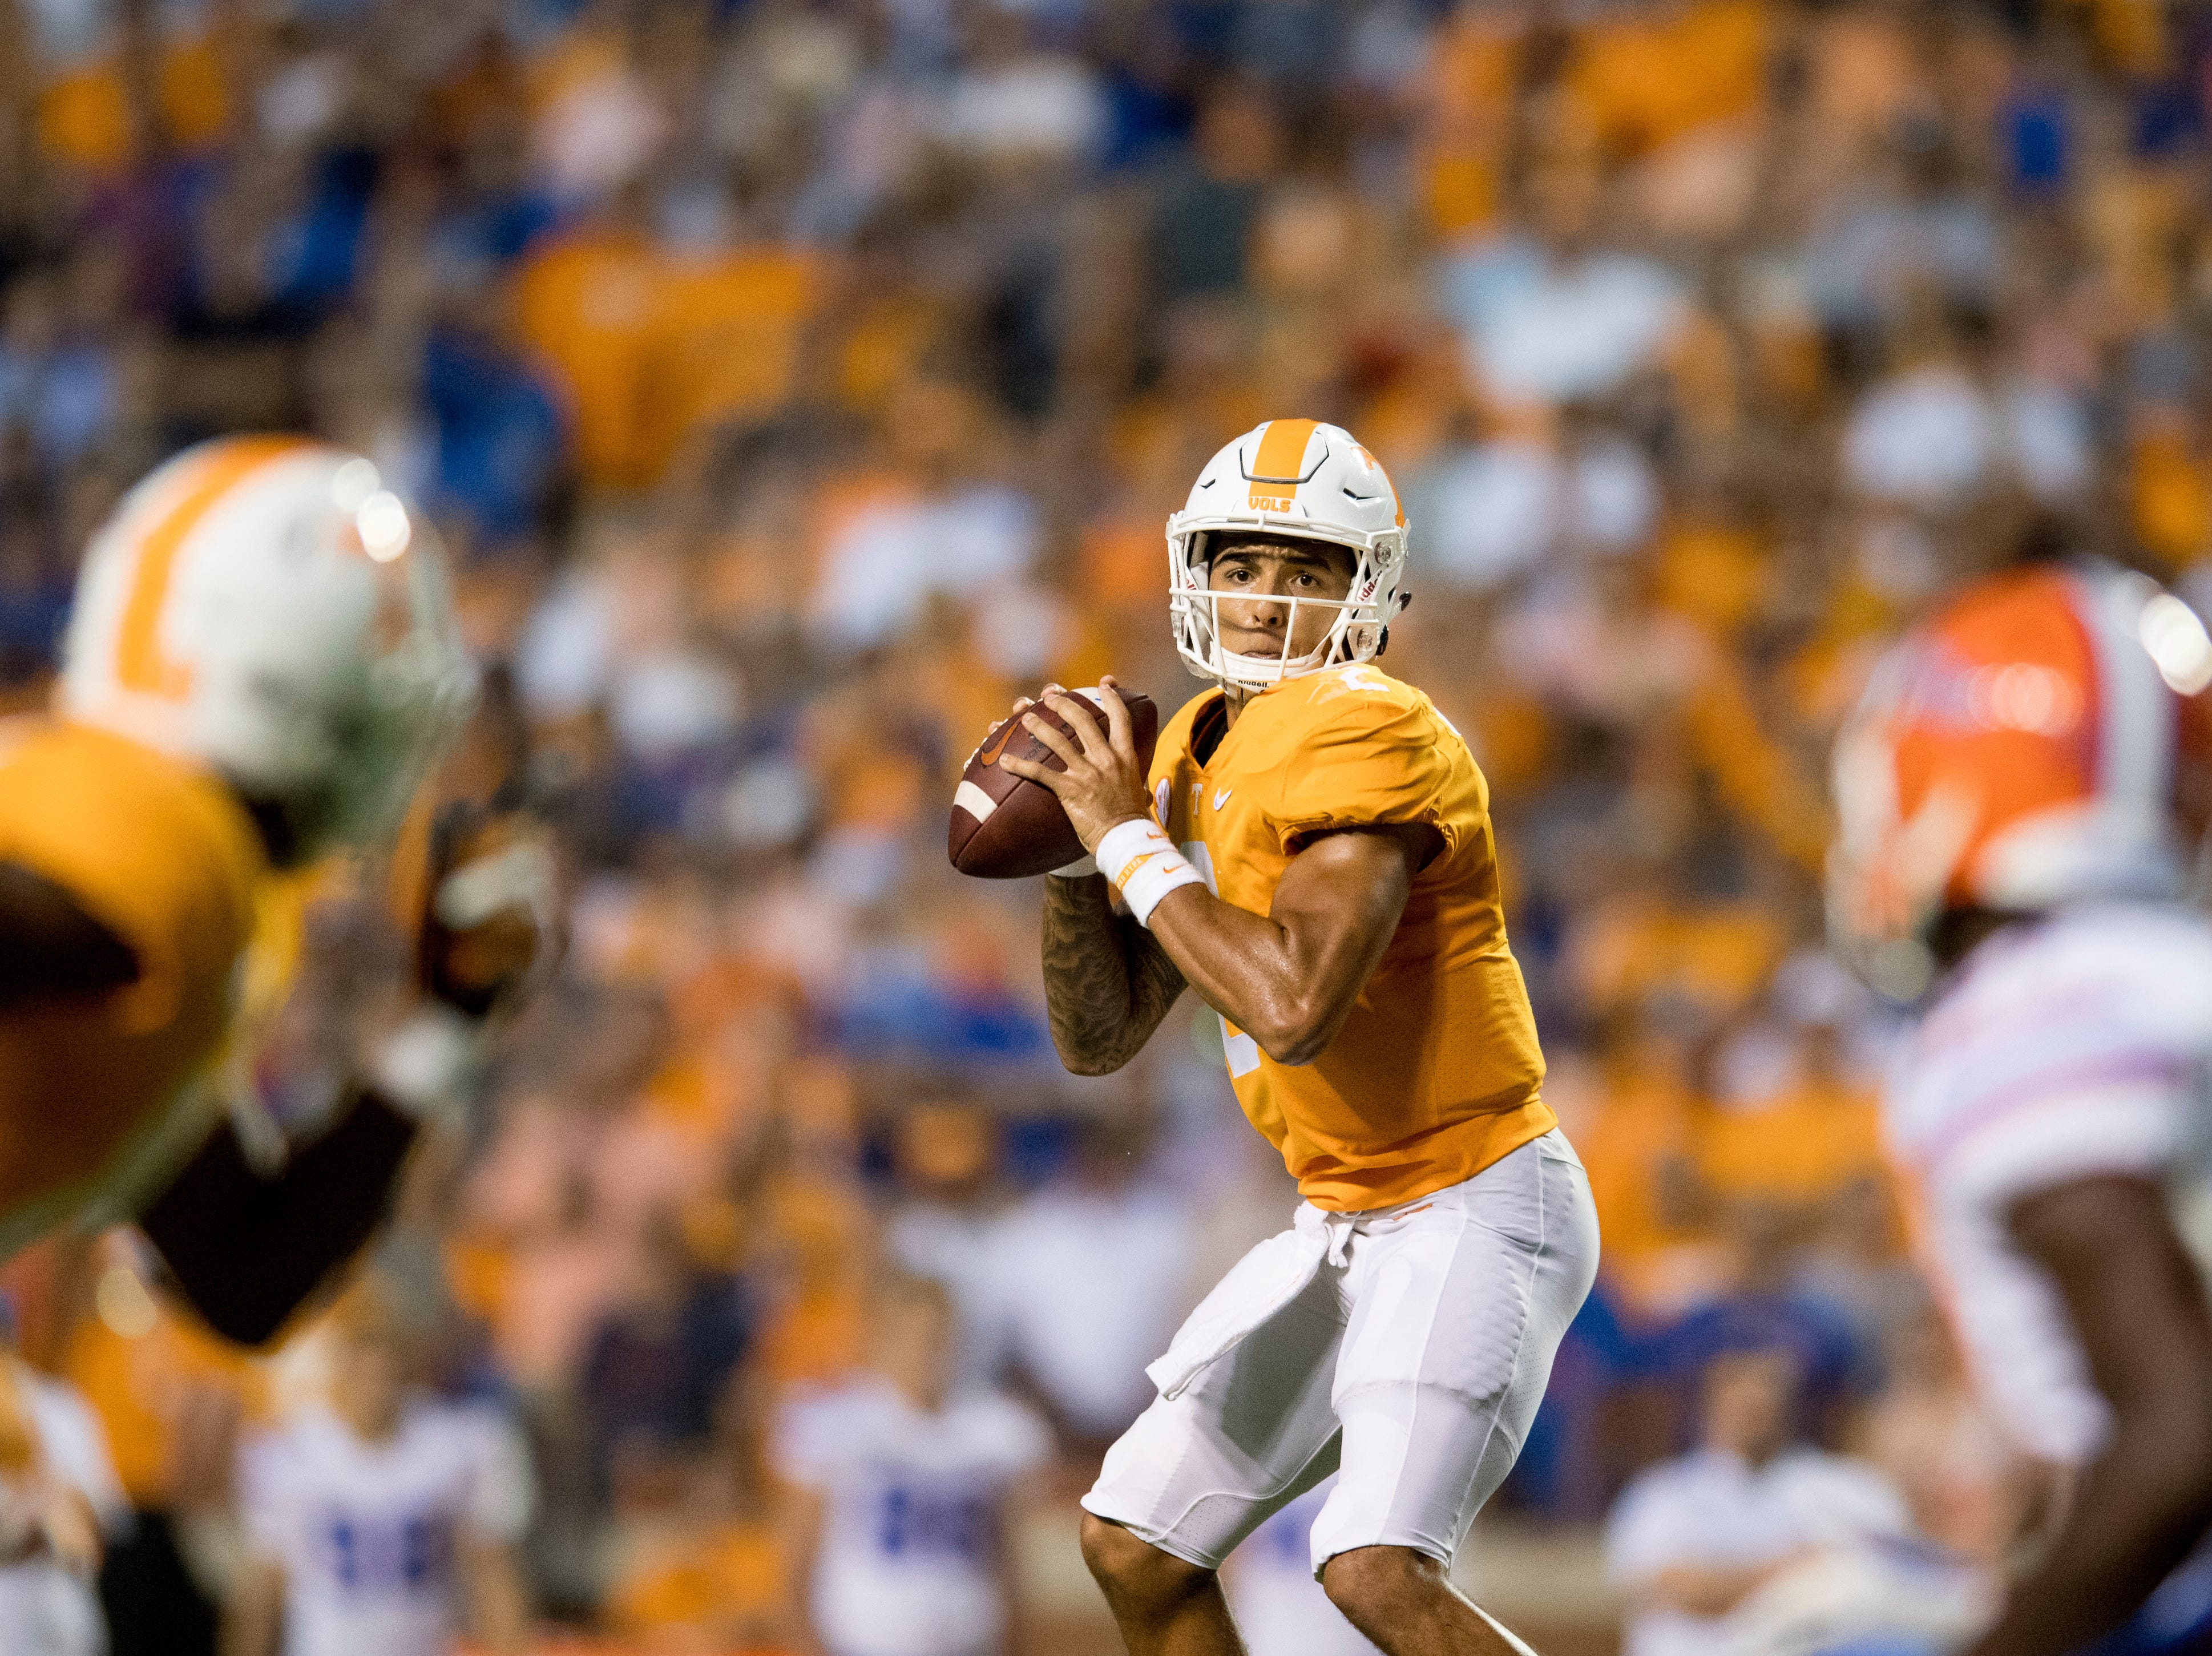 Tennessee quarterback Jarrett Guarantano (2) lines up a pass during a game between Tennessee and Florida at Neyland Stadium in Knoxville, Tennessee on Saturday, September 22, 2018.